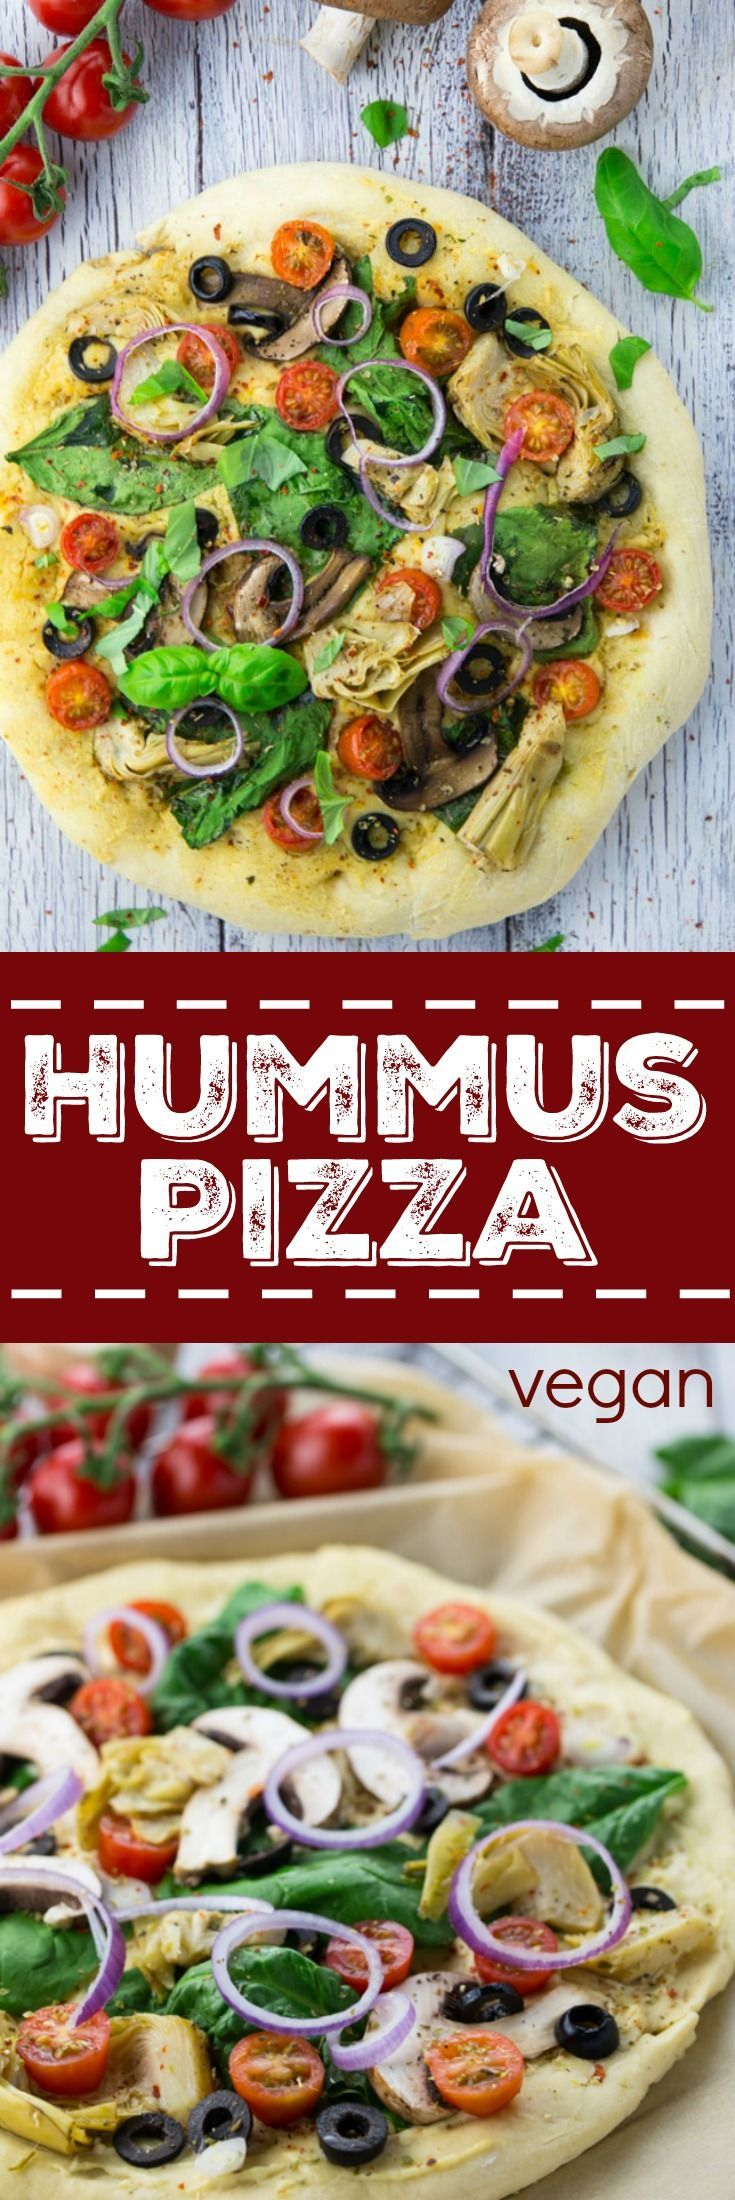 I love hummus and I love pizza. So I thought why not just try hummus pizza?! This vegan pizza with spinach, olives, and artichokes is one of my favorites! #nutritionhealthyeating